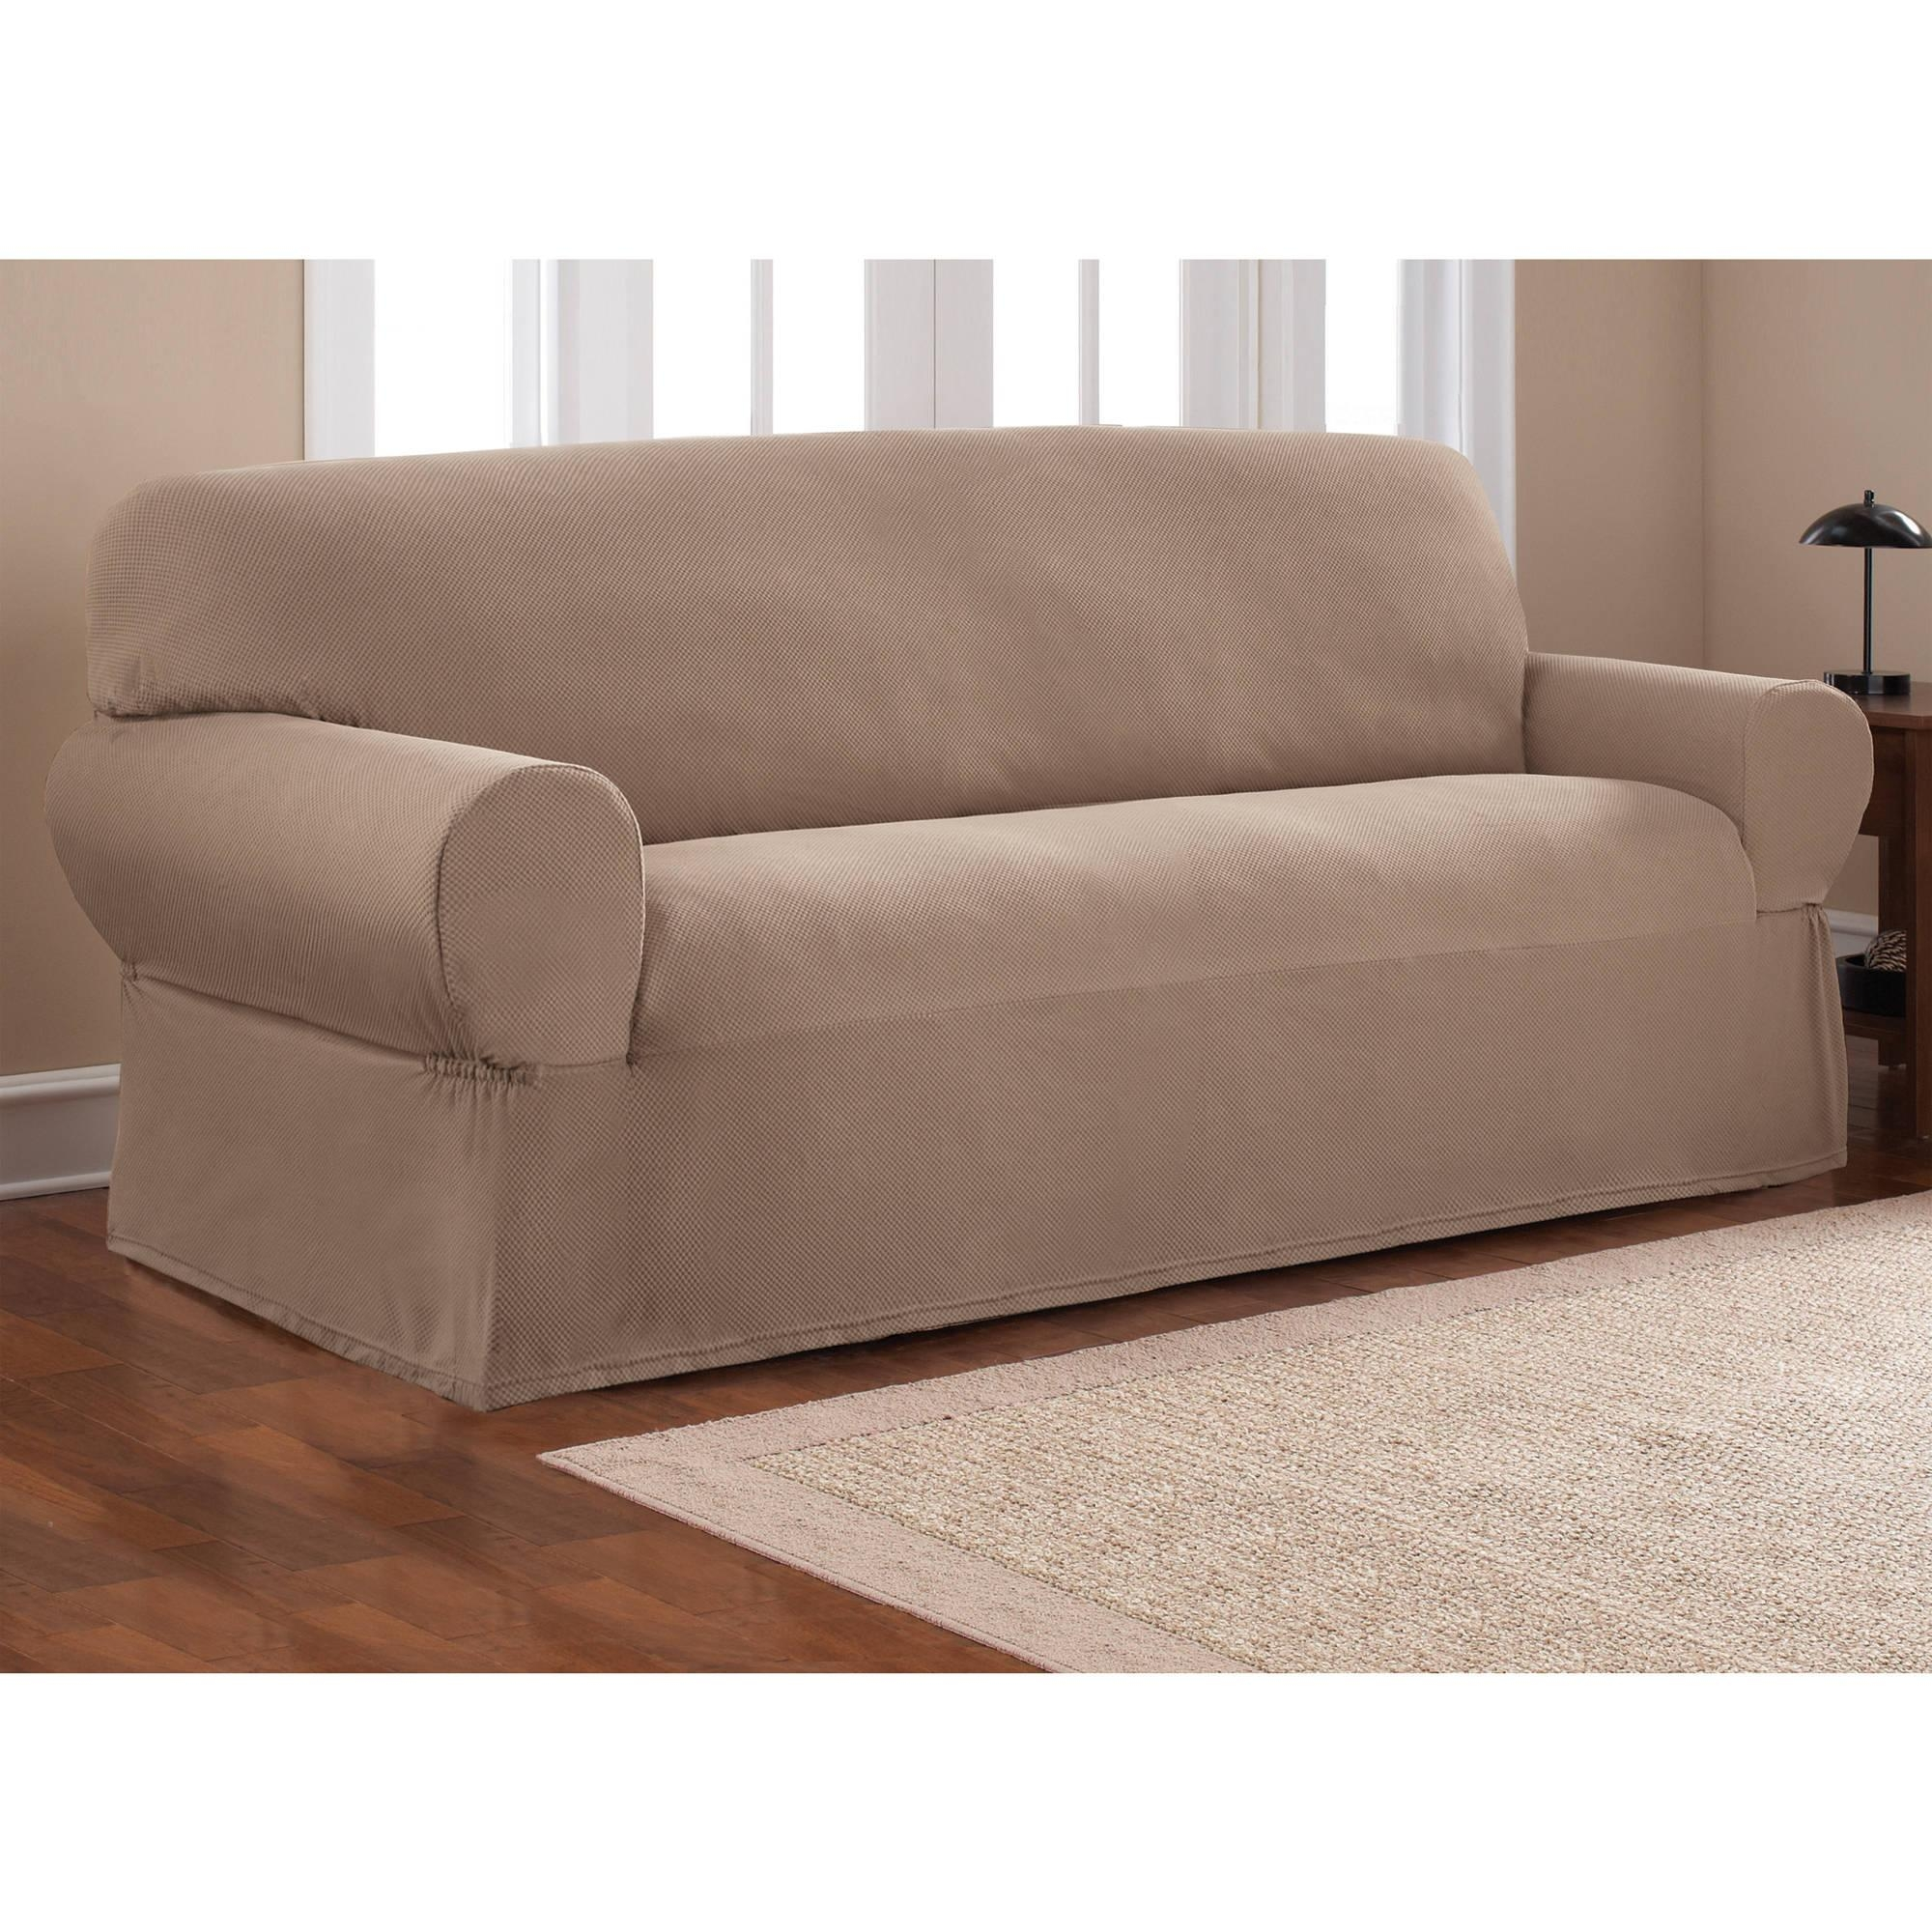 Sofas : Amazing T Cushion Loveseat Slipcover 3 Piece T Cushion Within 2 Piece Sofa Covers (View 11 of 27)